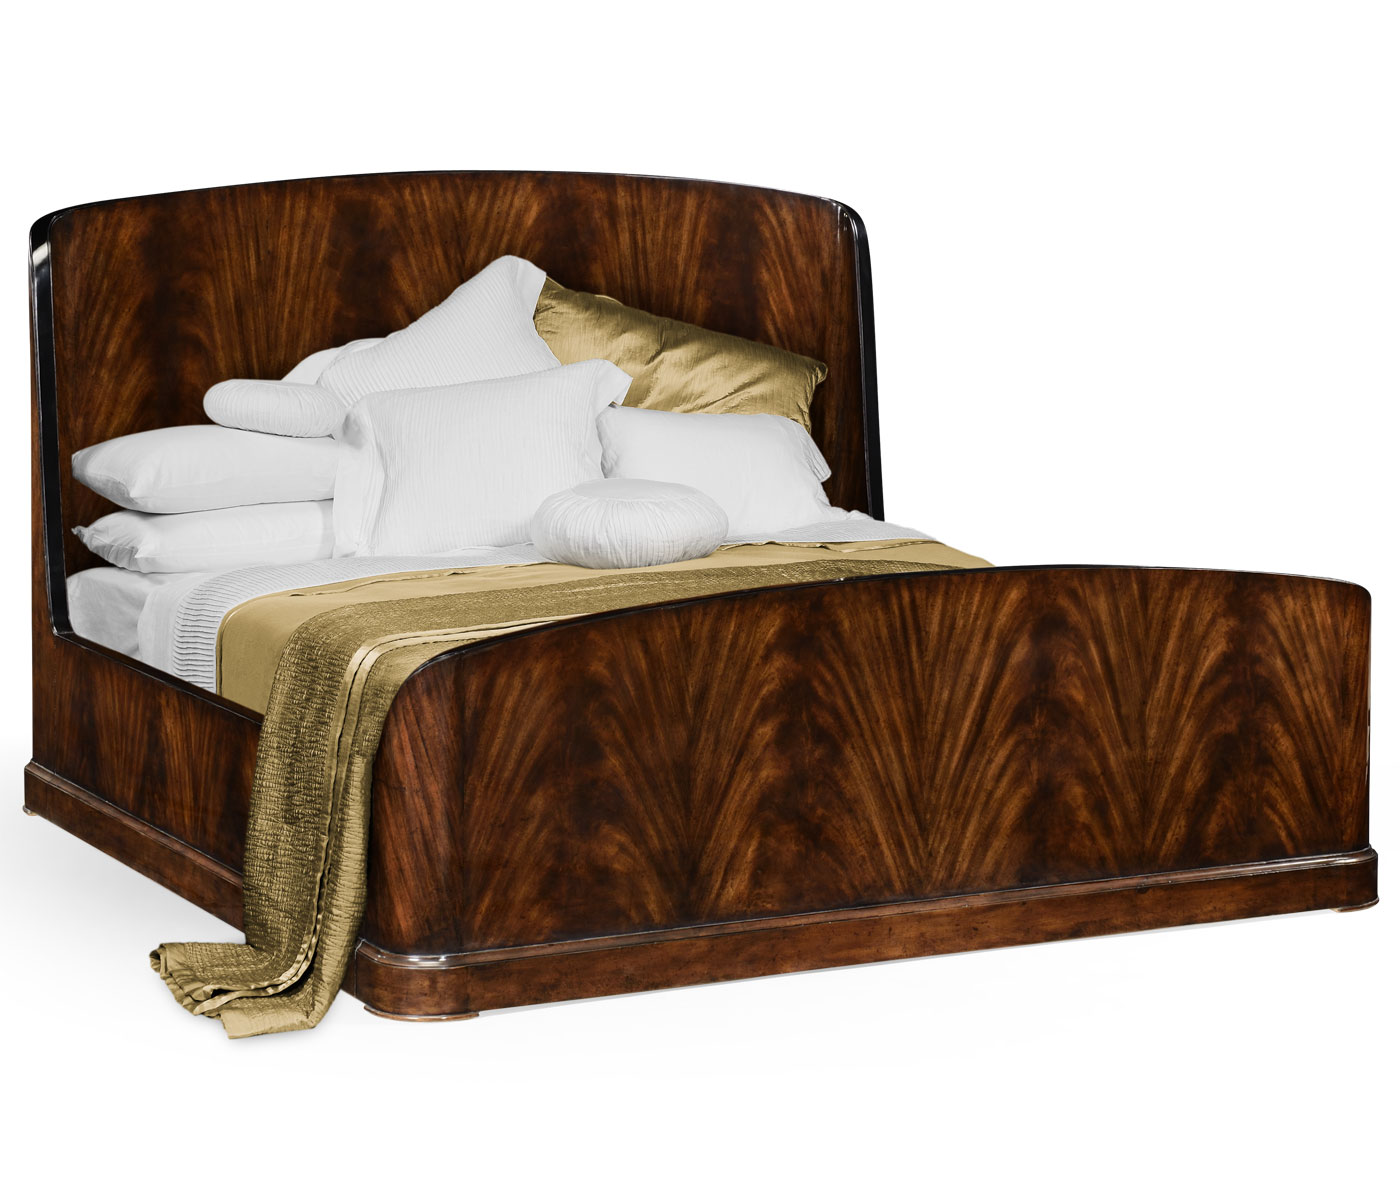 Us king biedermeier mahogany bed for X furniture catalogue